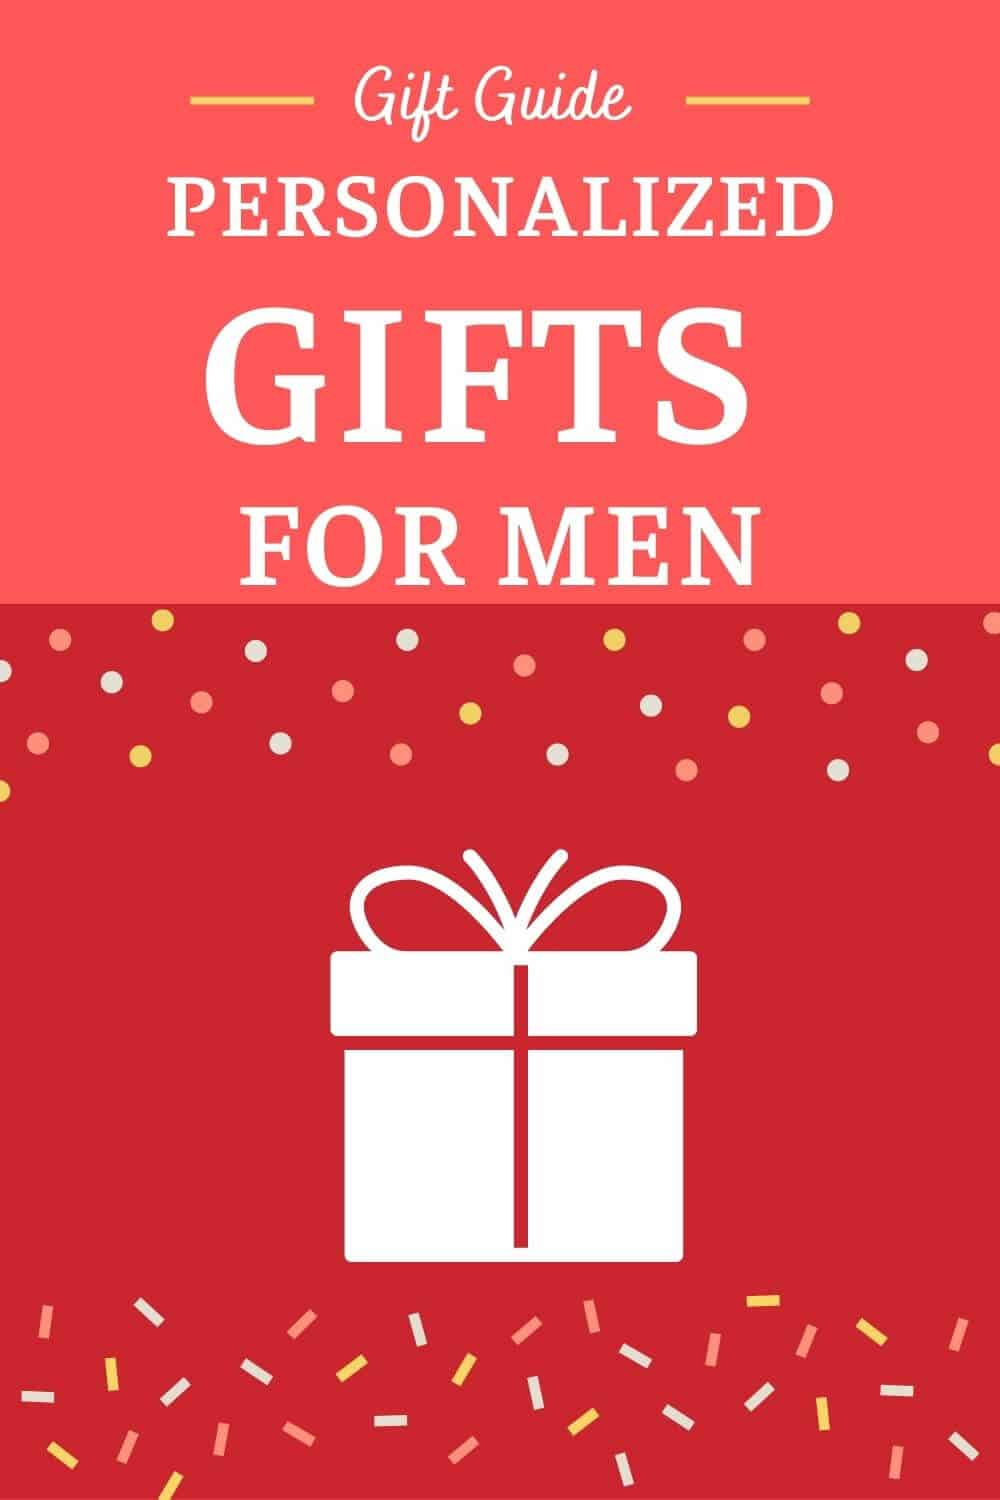 Best Personalized Gifts for Men